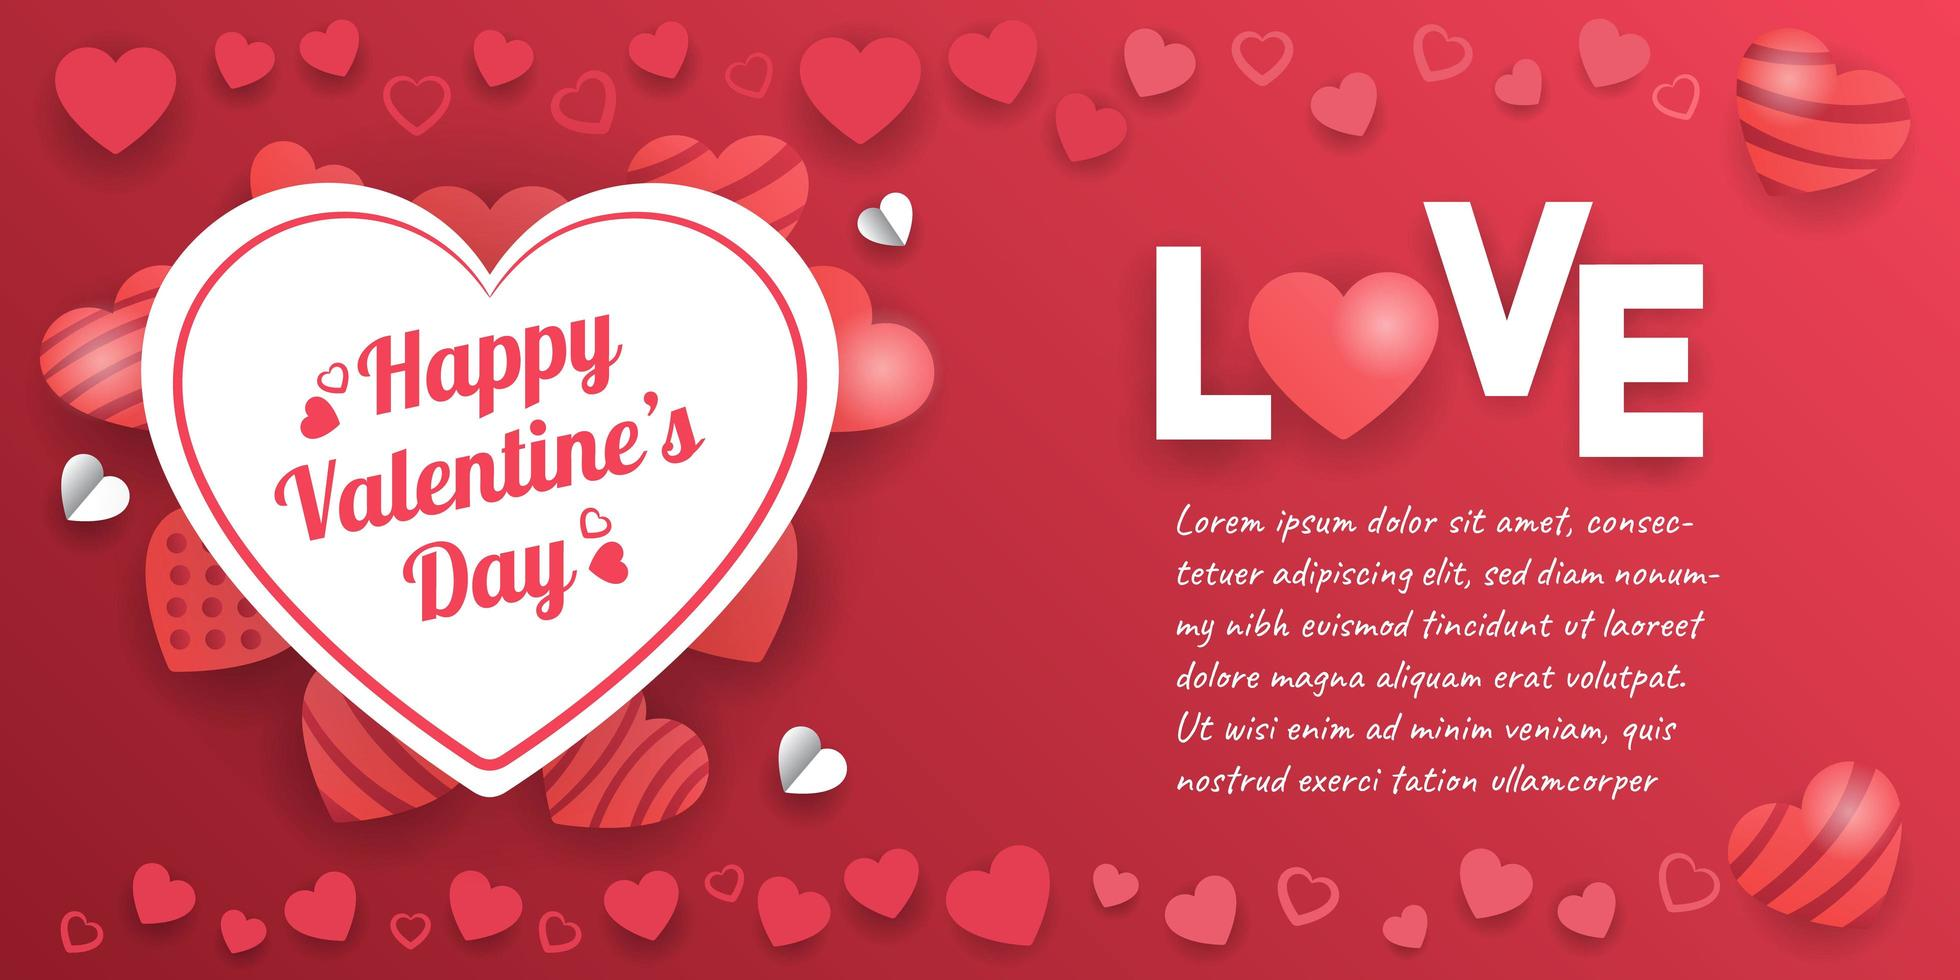 Valentine S Day Banner With Heart Decorations Download Free Vectors Clipart Graphics Vector Art This is such a pretty animation, with the pink hearts, arrows. https www vecteezy com vector art 963000 valentine s day banner with heart decorations